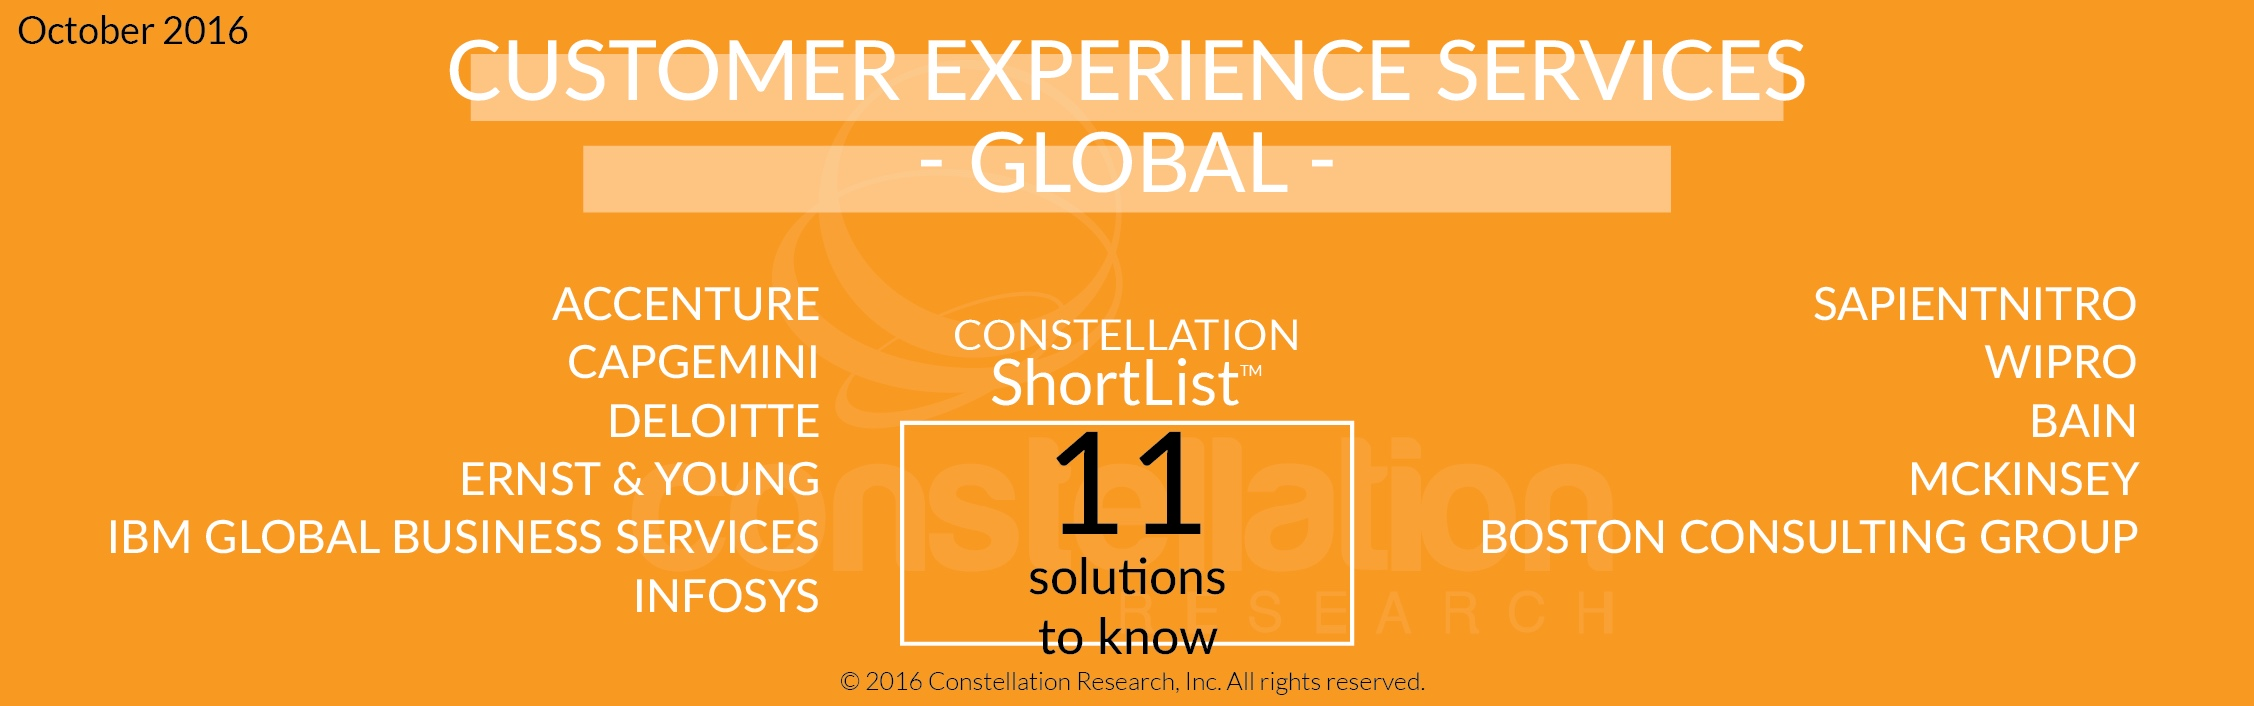 Constellation ShortList™ for Customer Experience (CX) Services: Global